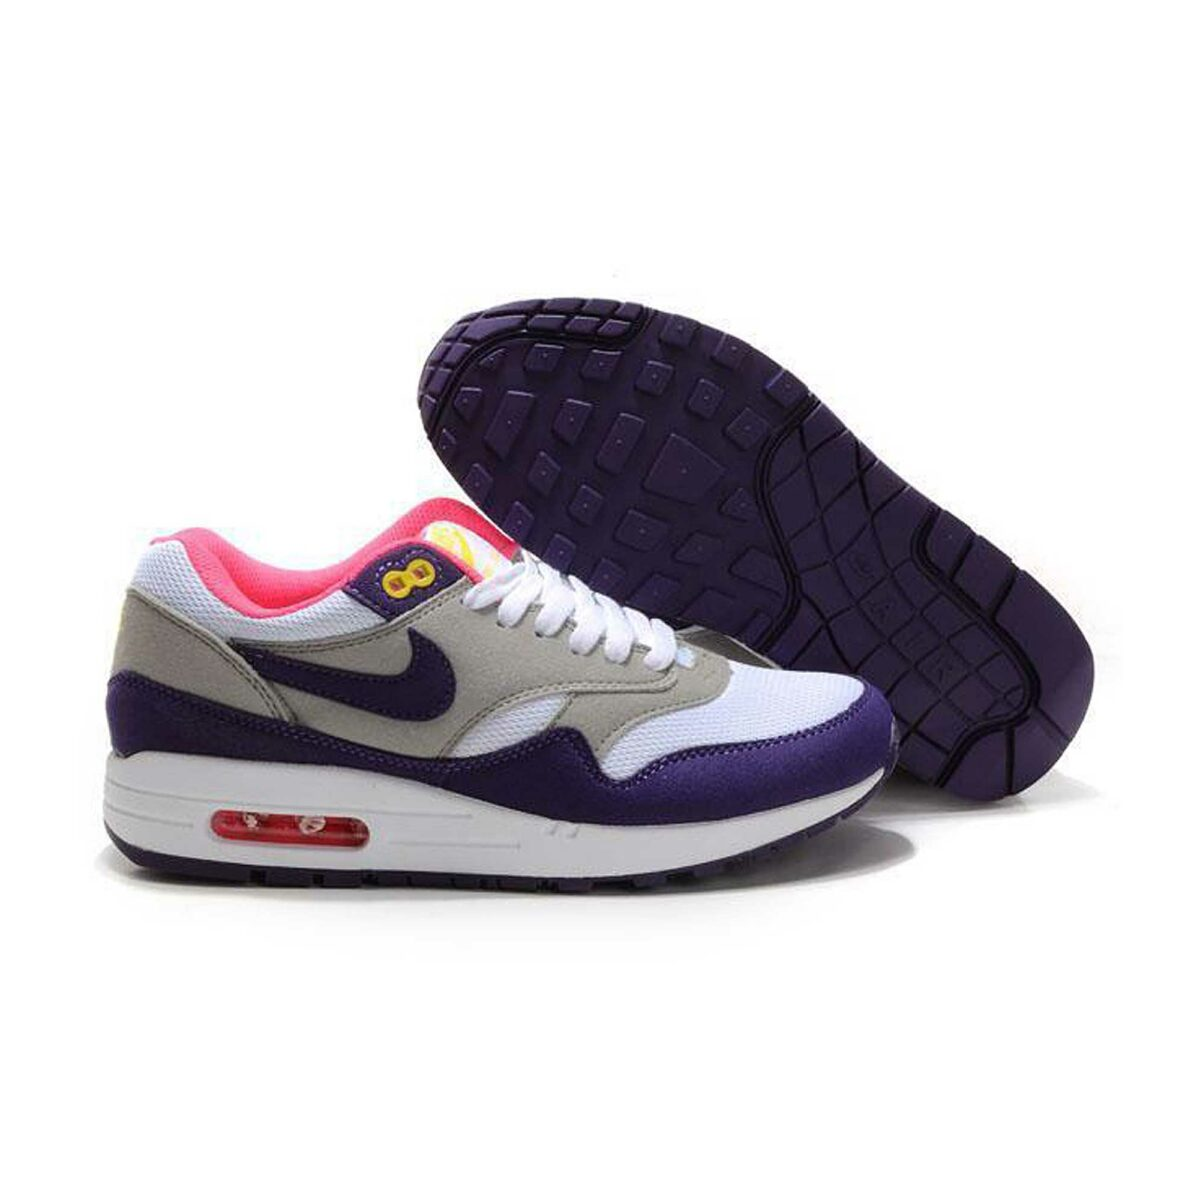 Интернет магазин Nike Air Max 1 87 Purple Grey